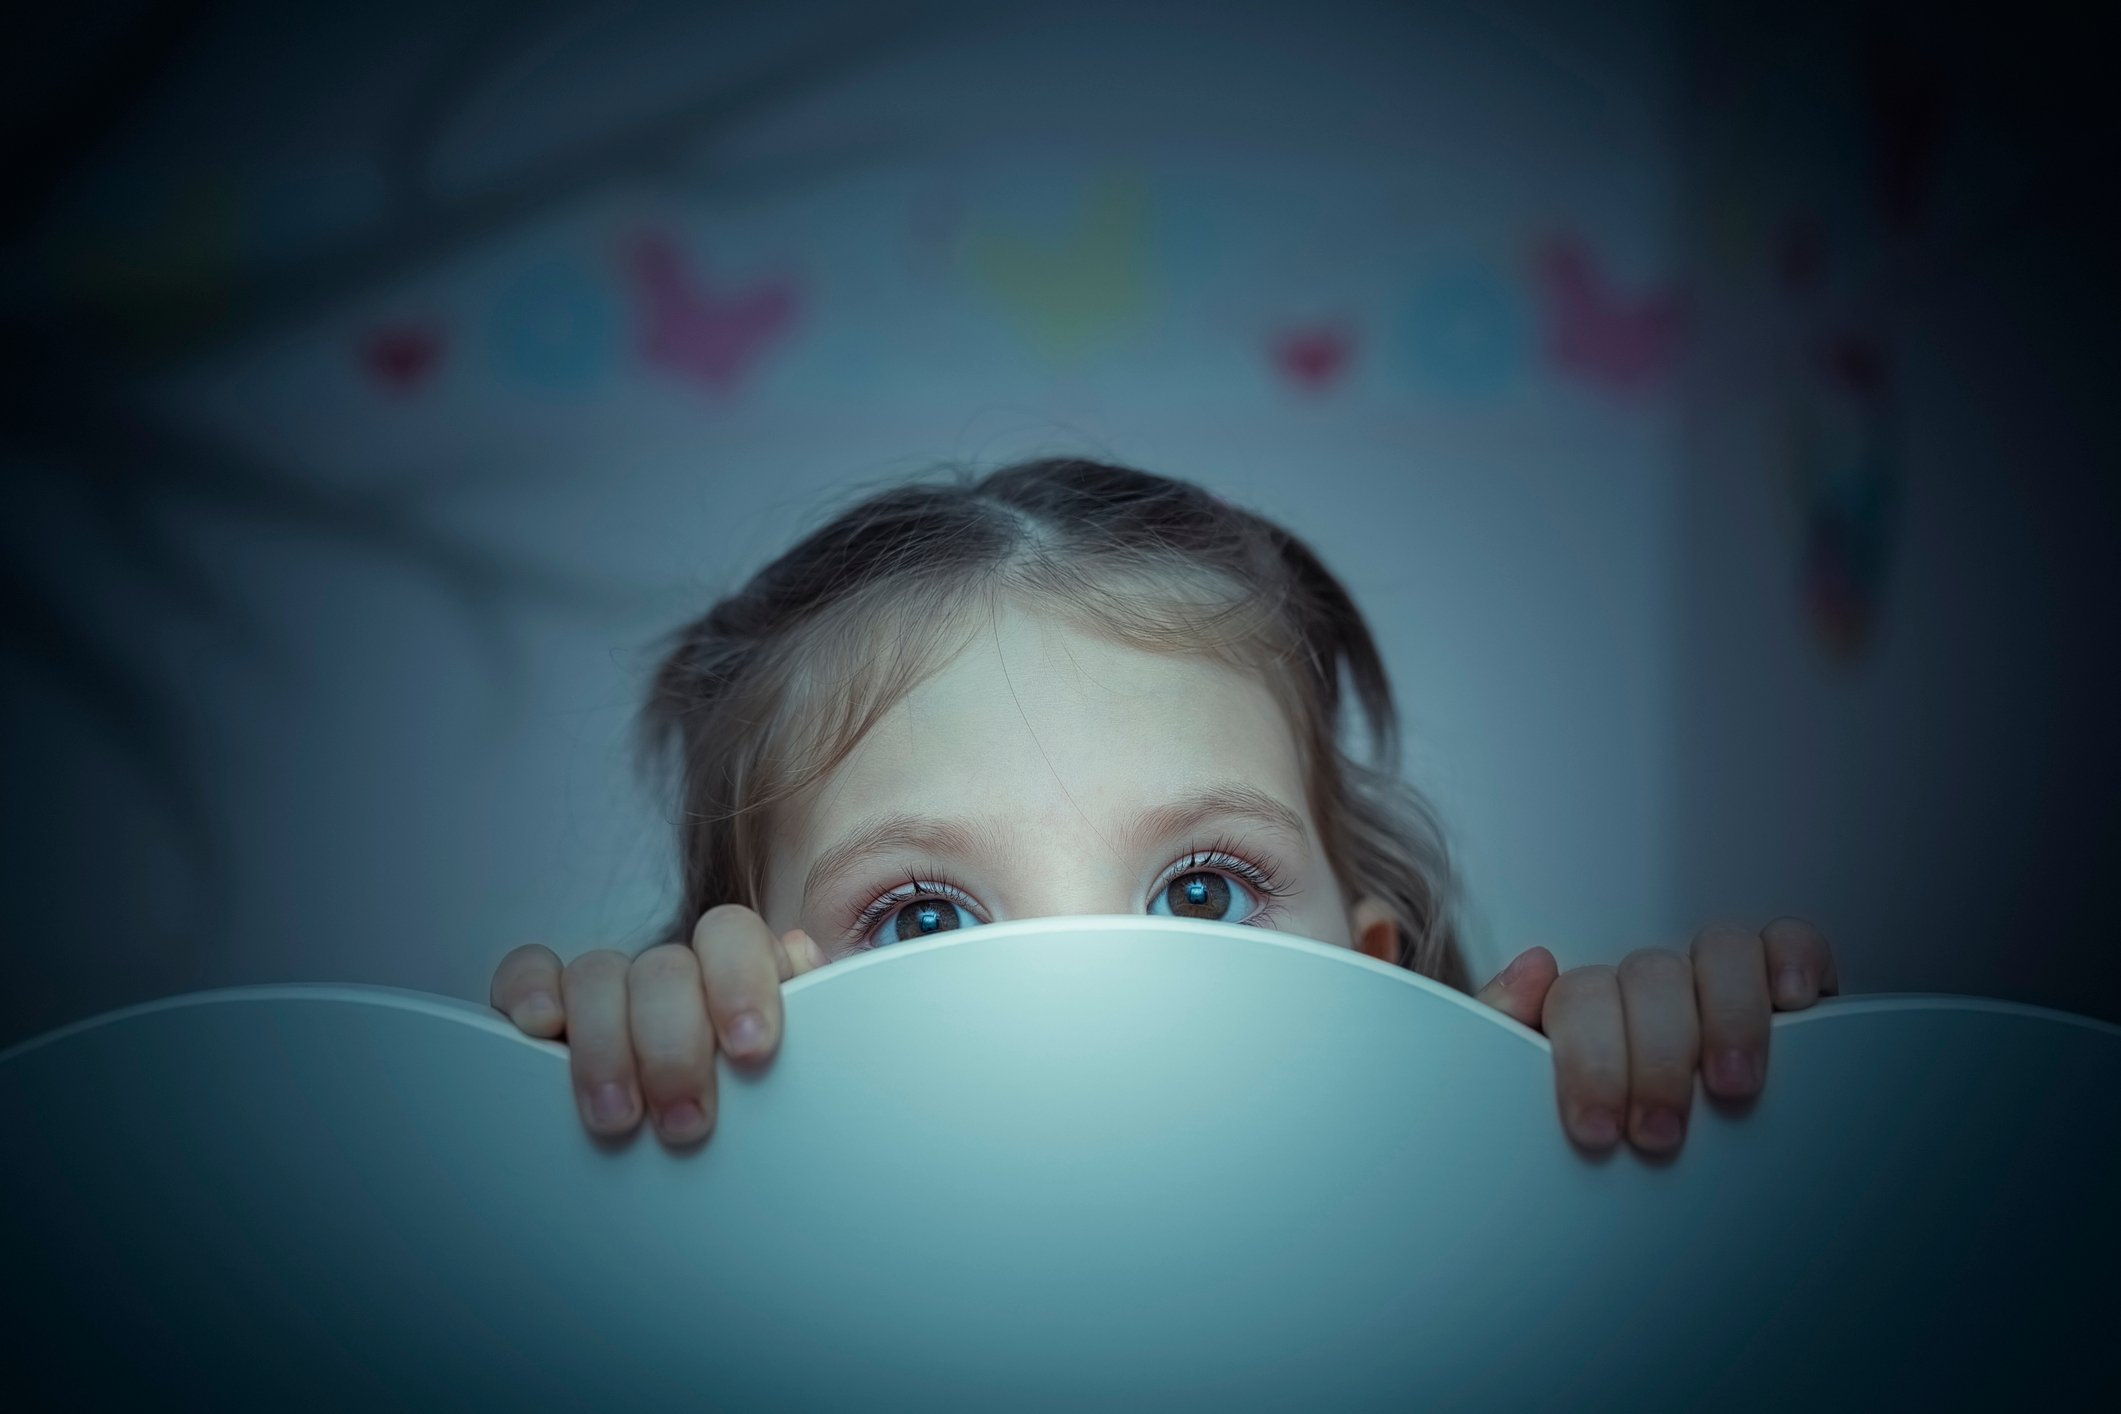 Small child peering out from behind headboard.